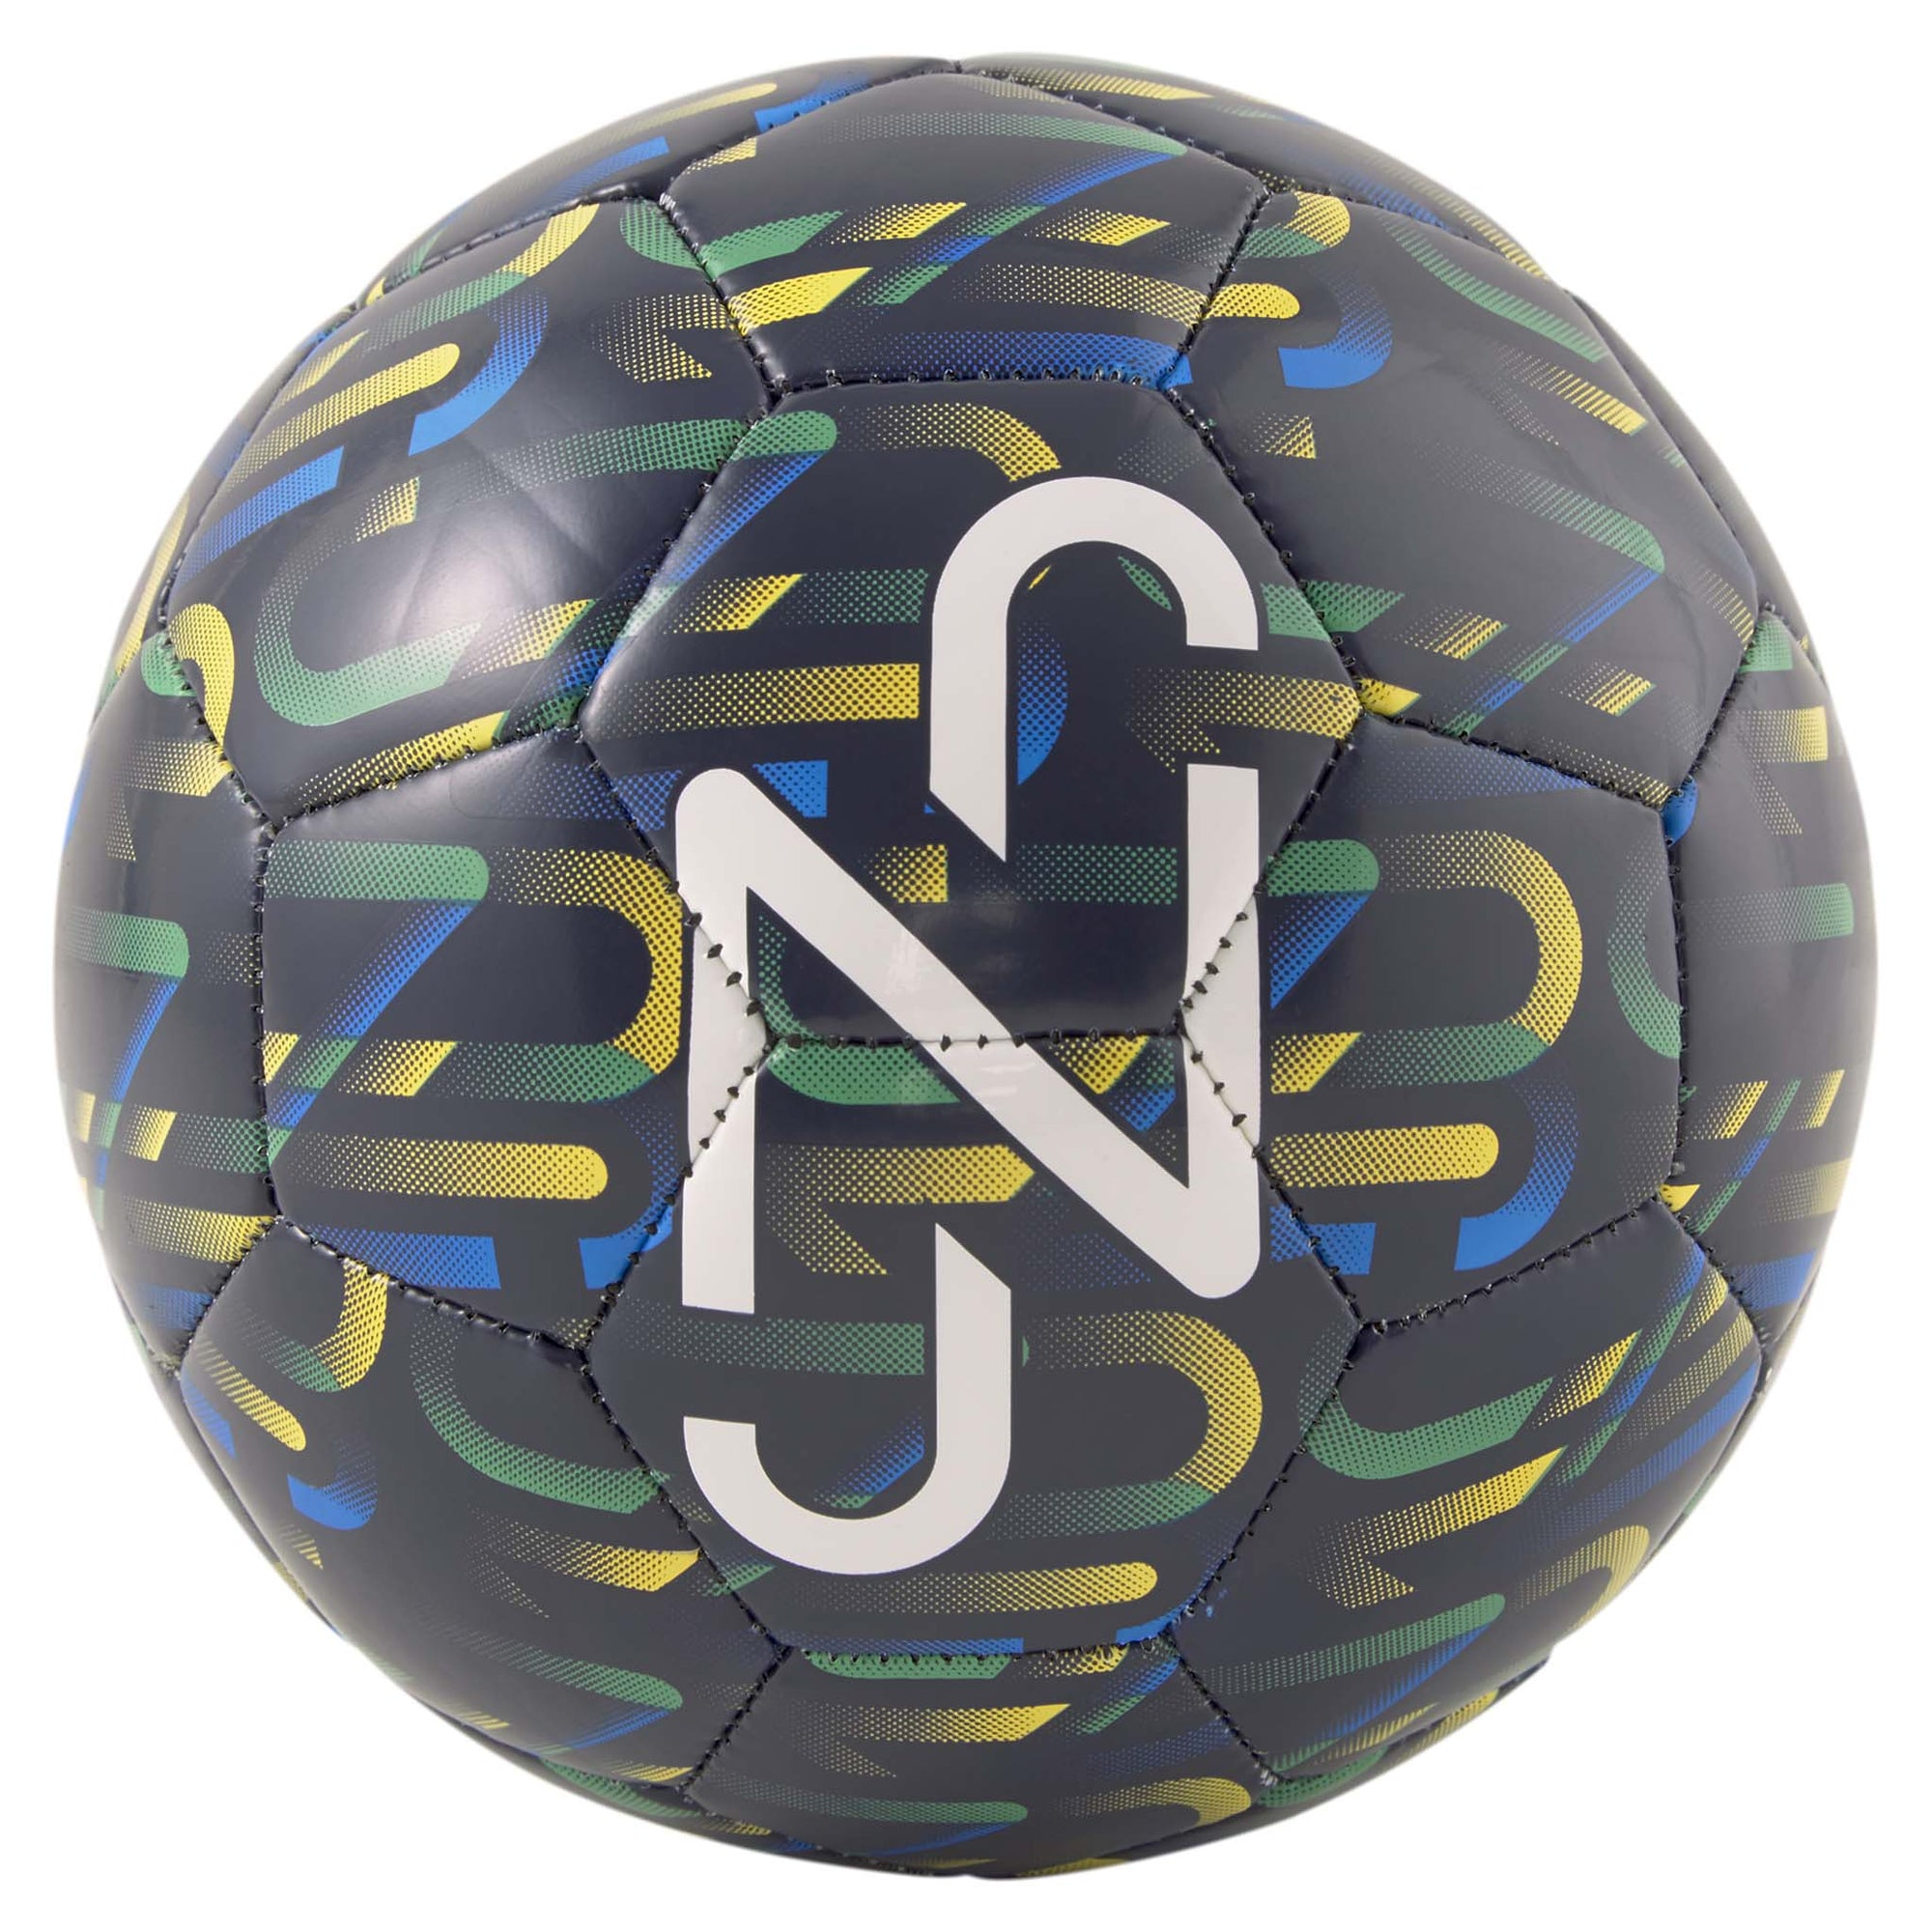 Puma NJR Fan Ball mini ballon de soccer Neymar Jr